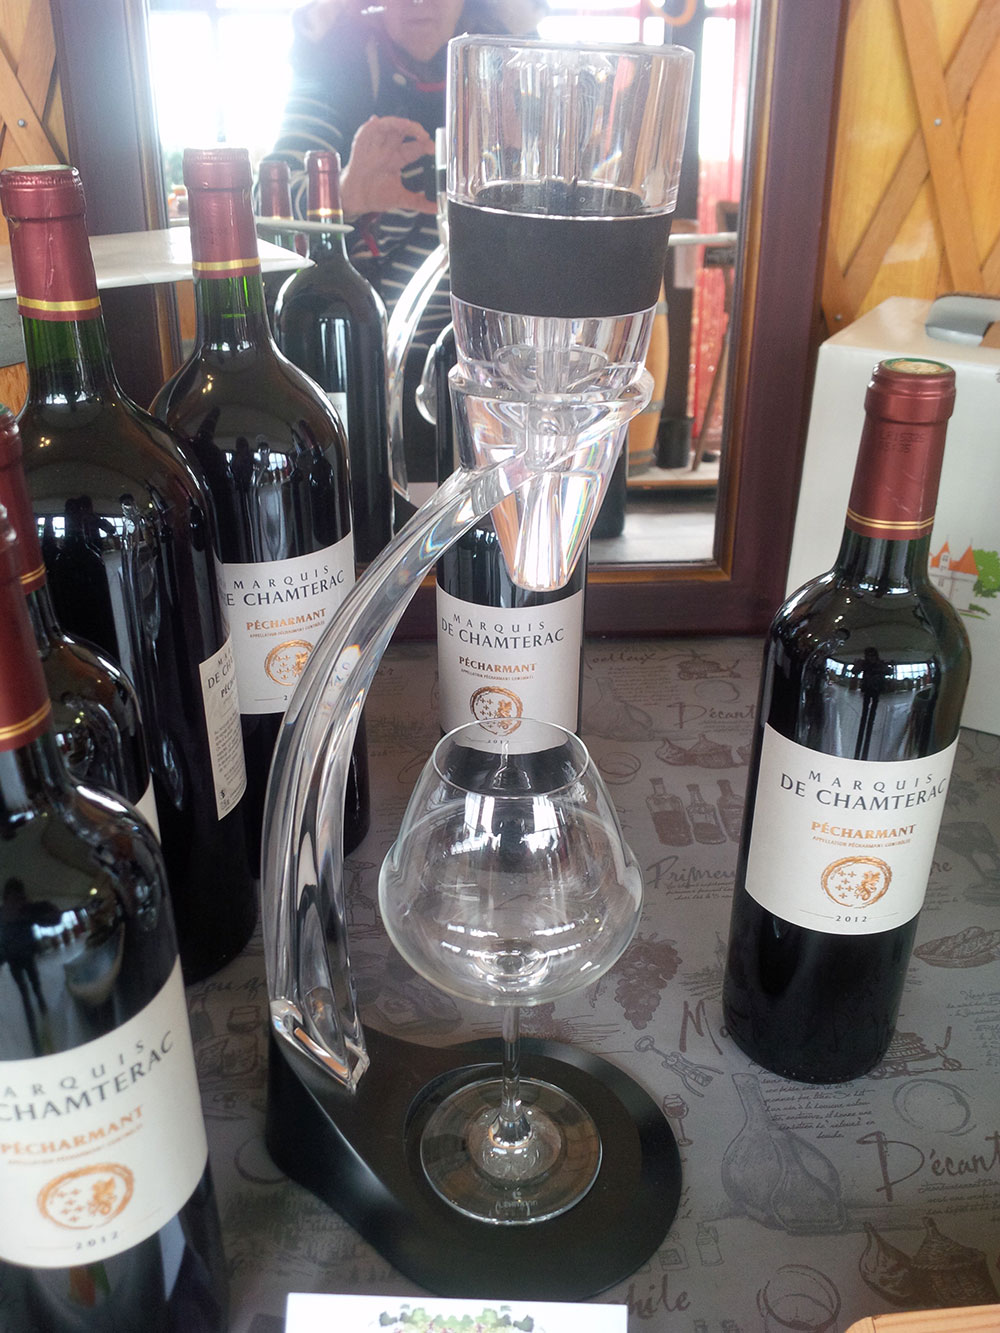 We stopped off to give the dogs a leg stretch near a winery, where we came across this very practical aerator. An all-in-one solution to the challenge of holding the bottle, the glass and the aerator!